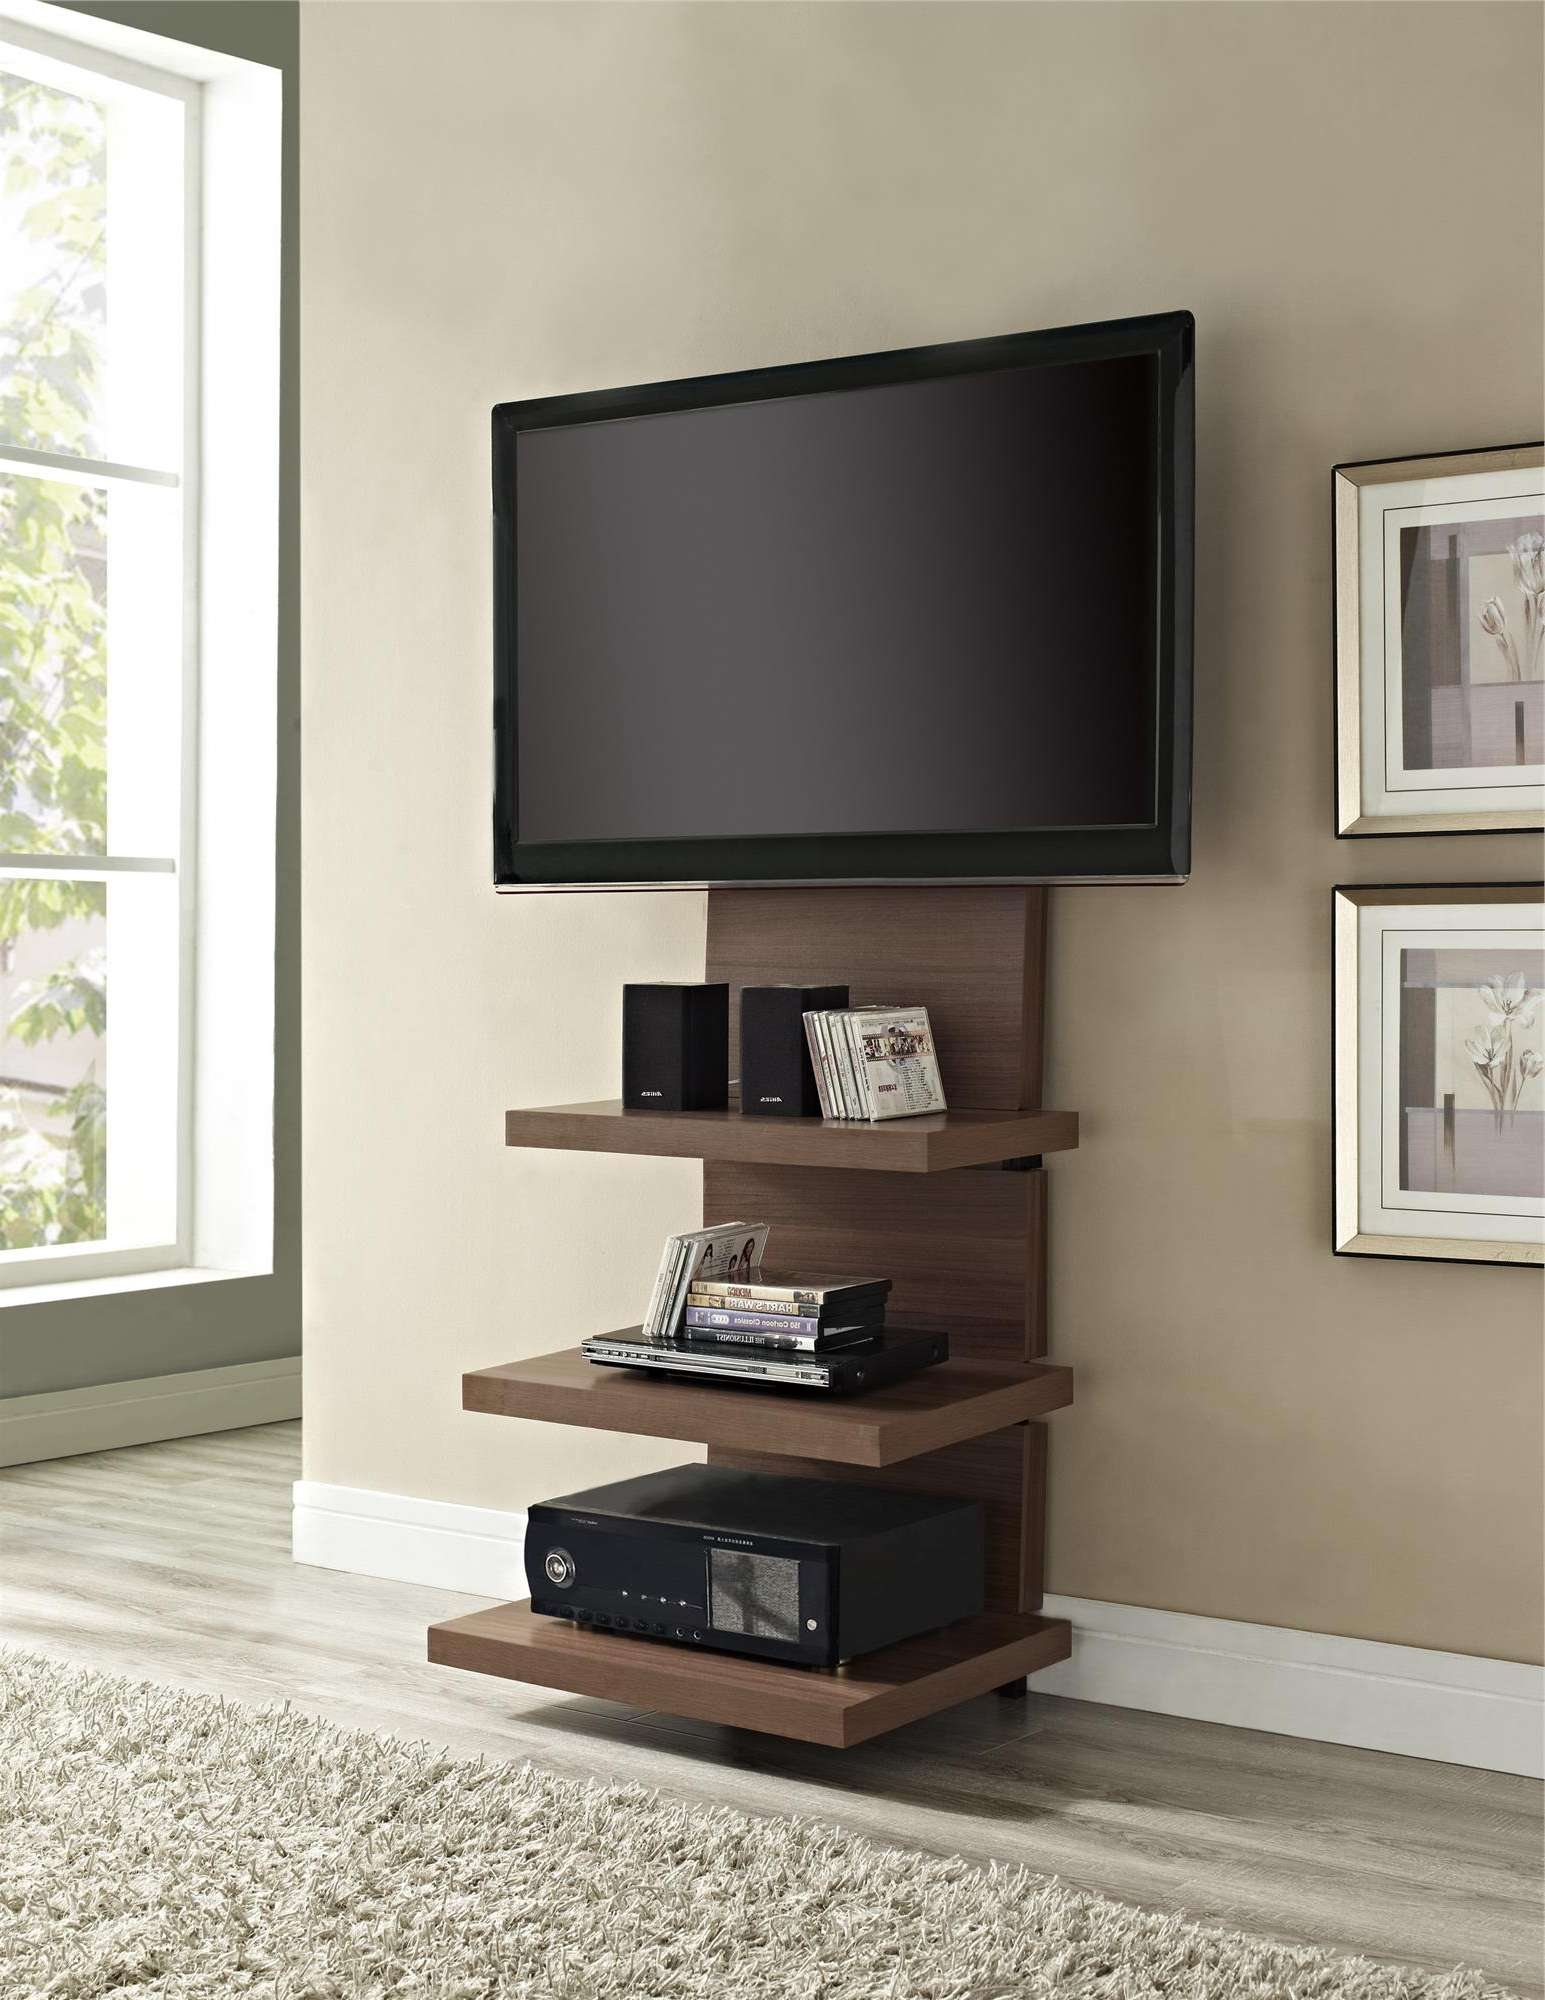 Tv Wall Shelf Wood In Different Styles ~ Crowdbuild For (View 5 of 15)